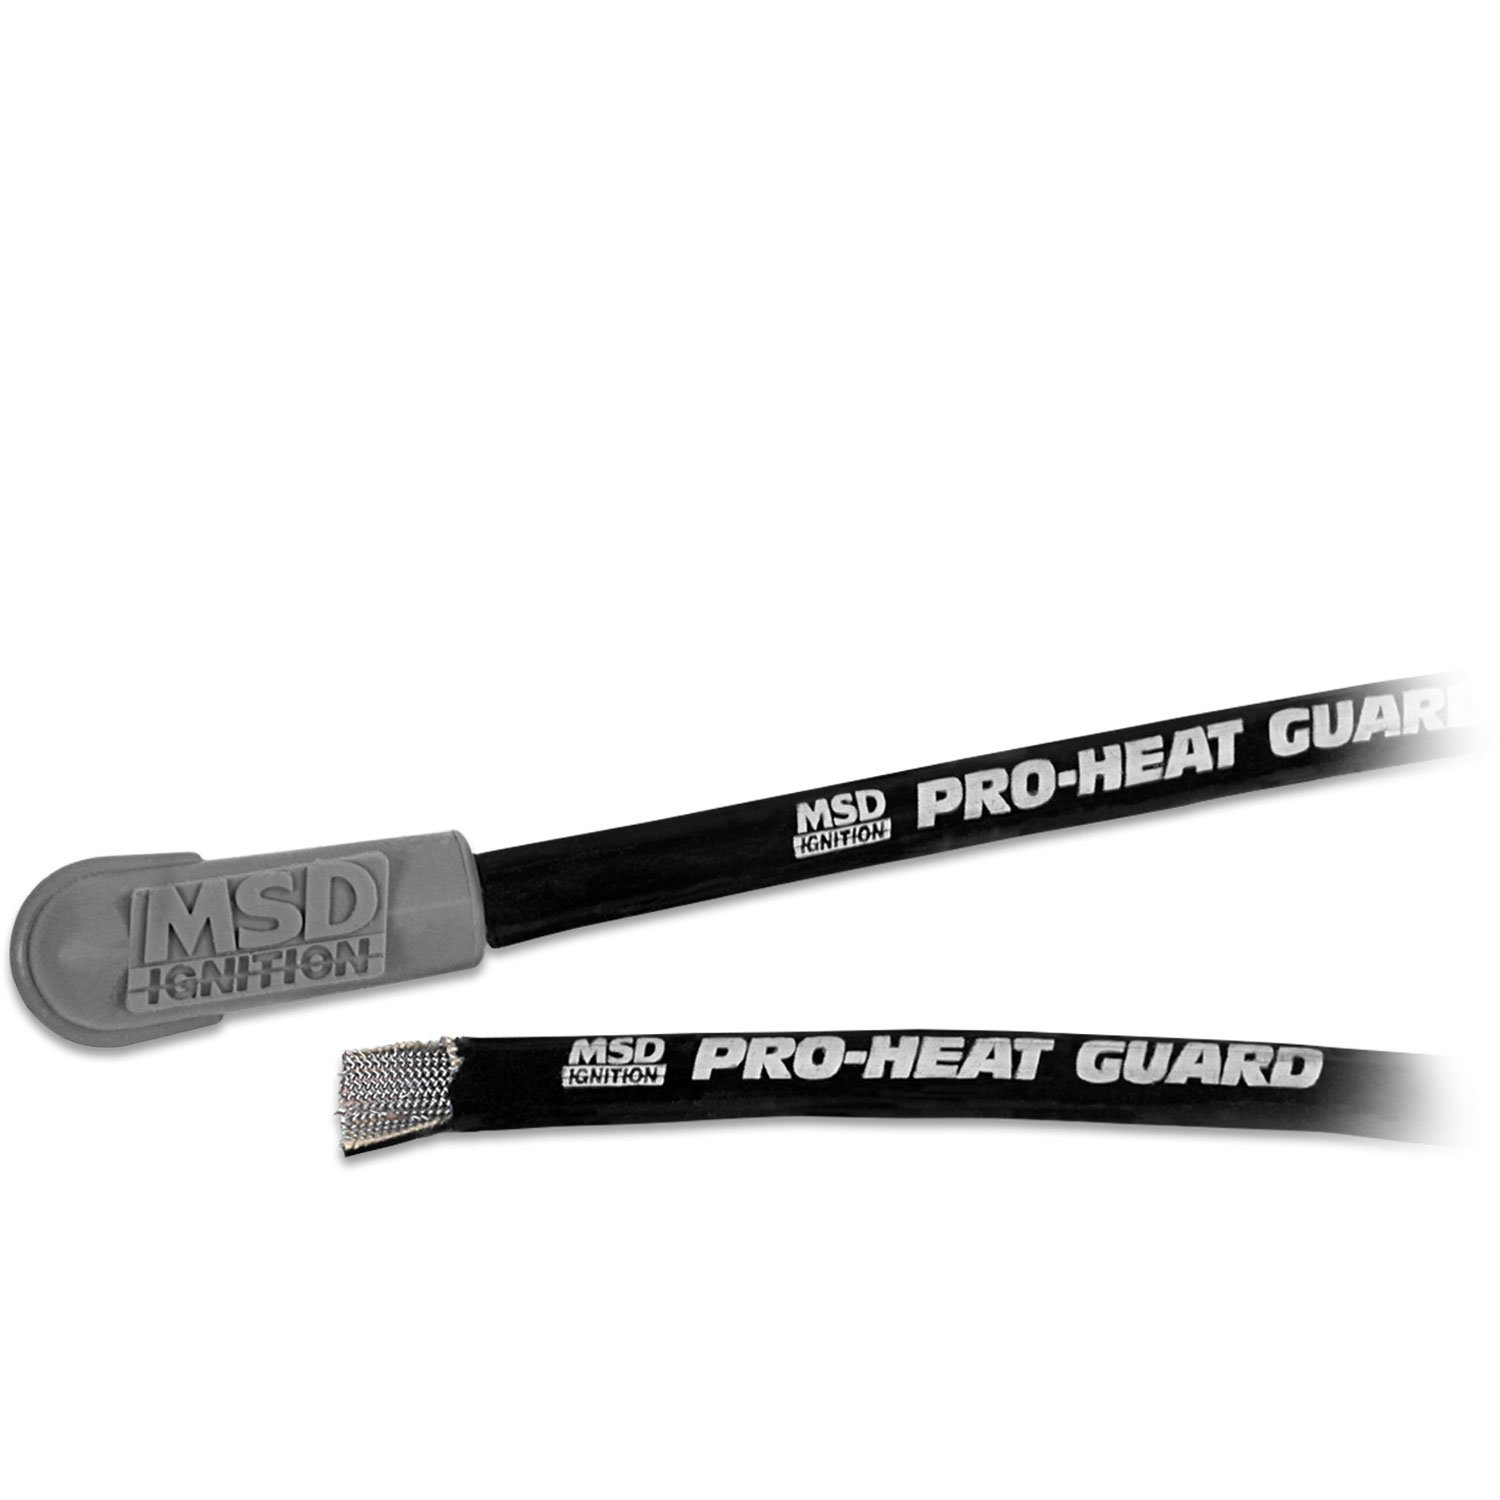 3411 - Pro-Heat Guard, Hi-Temp Silicone Sleeve, 25' Image